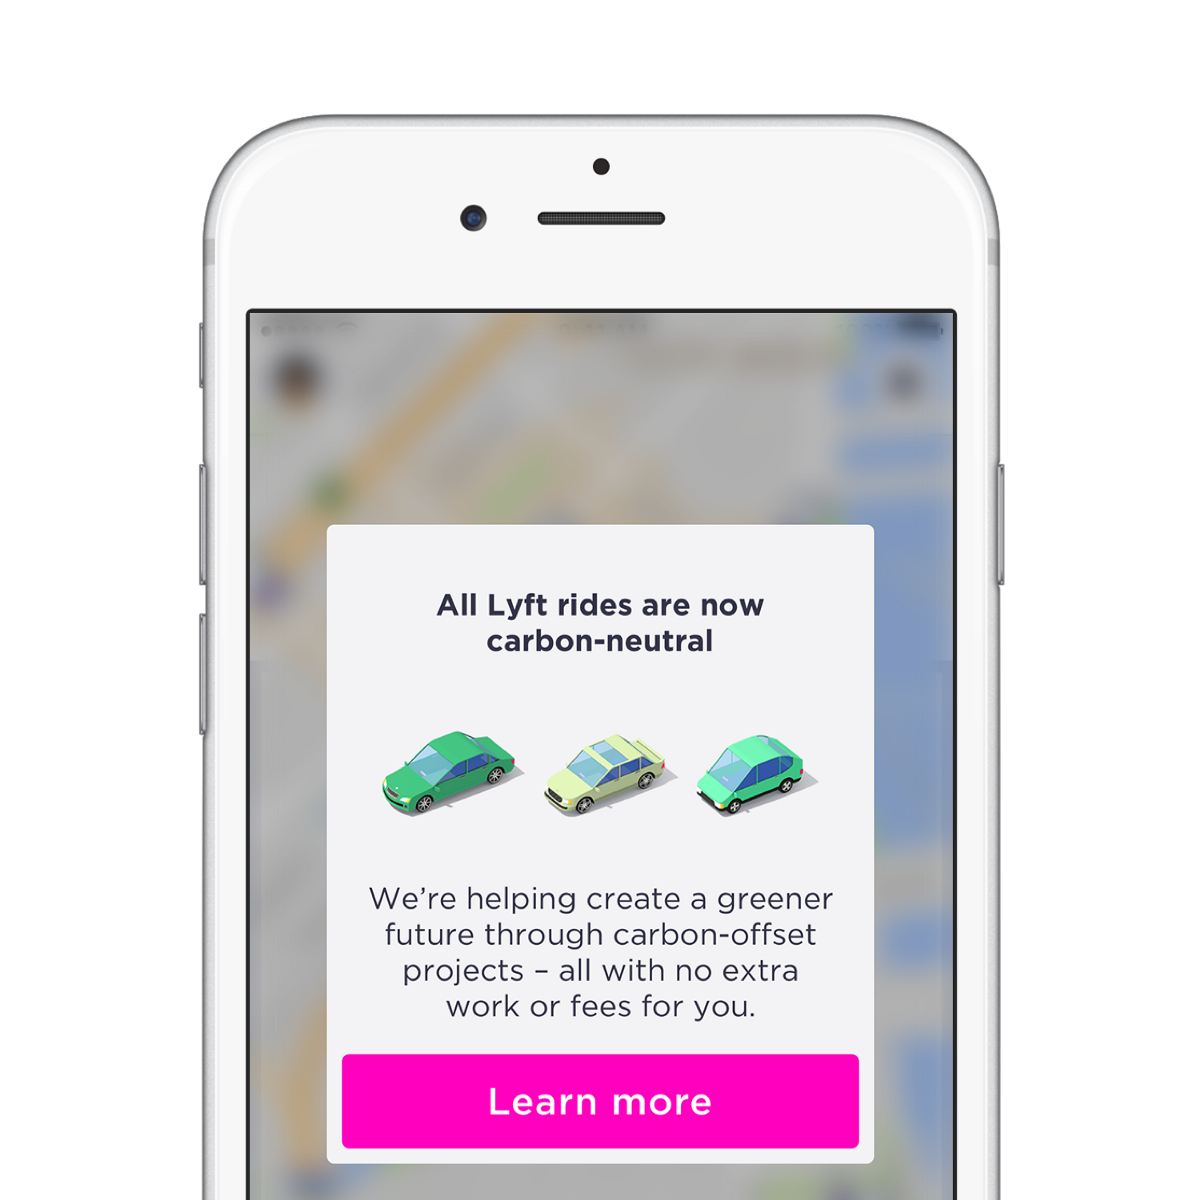 Lyft plans to offset carbon emissions from rides to fight climate change